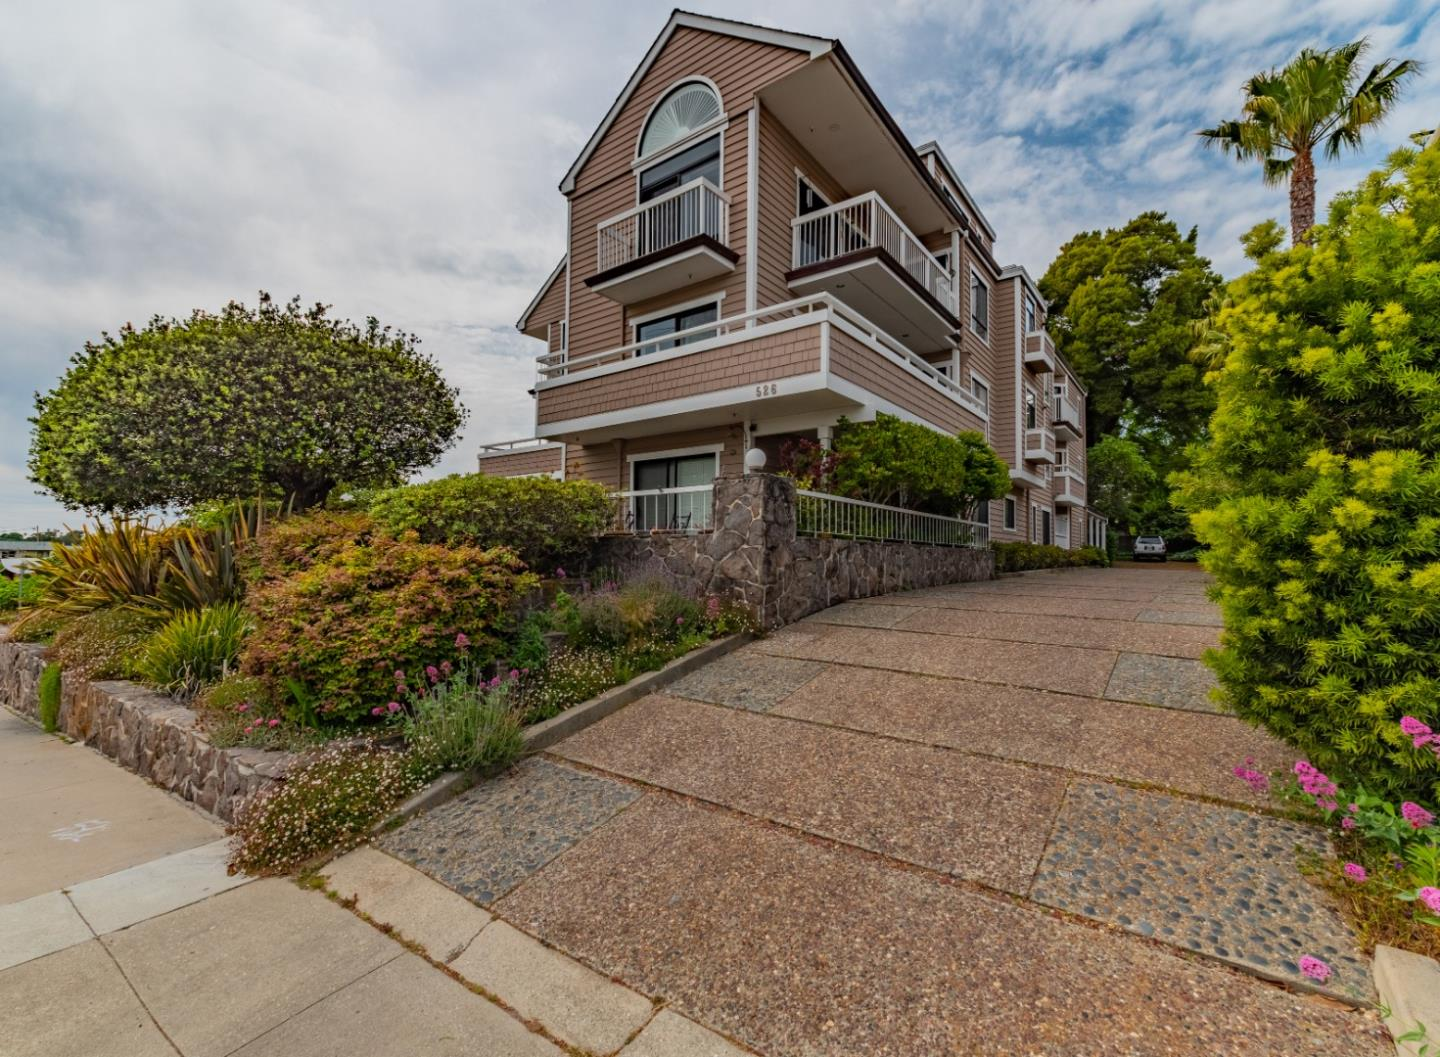 Spacious Beach Hill condo with panoramic ocean views from every room! Check the surf at Cowells from your own private oasis. Extremely well maintained complex of only 10 units with two underground assigned spaces and spots for guests. Centrally located between the beach and downtown, this residence has wraparound balconies looking out on the Monterey Bay Marine Sanctuary. Walk to great dining downtown, the Santa Cruz Warriors arena, or just a stroll along West Cliff Drive.